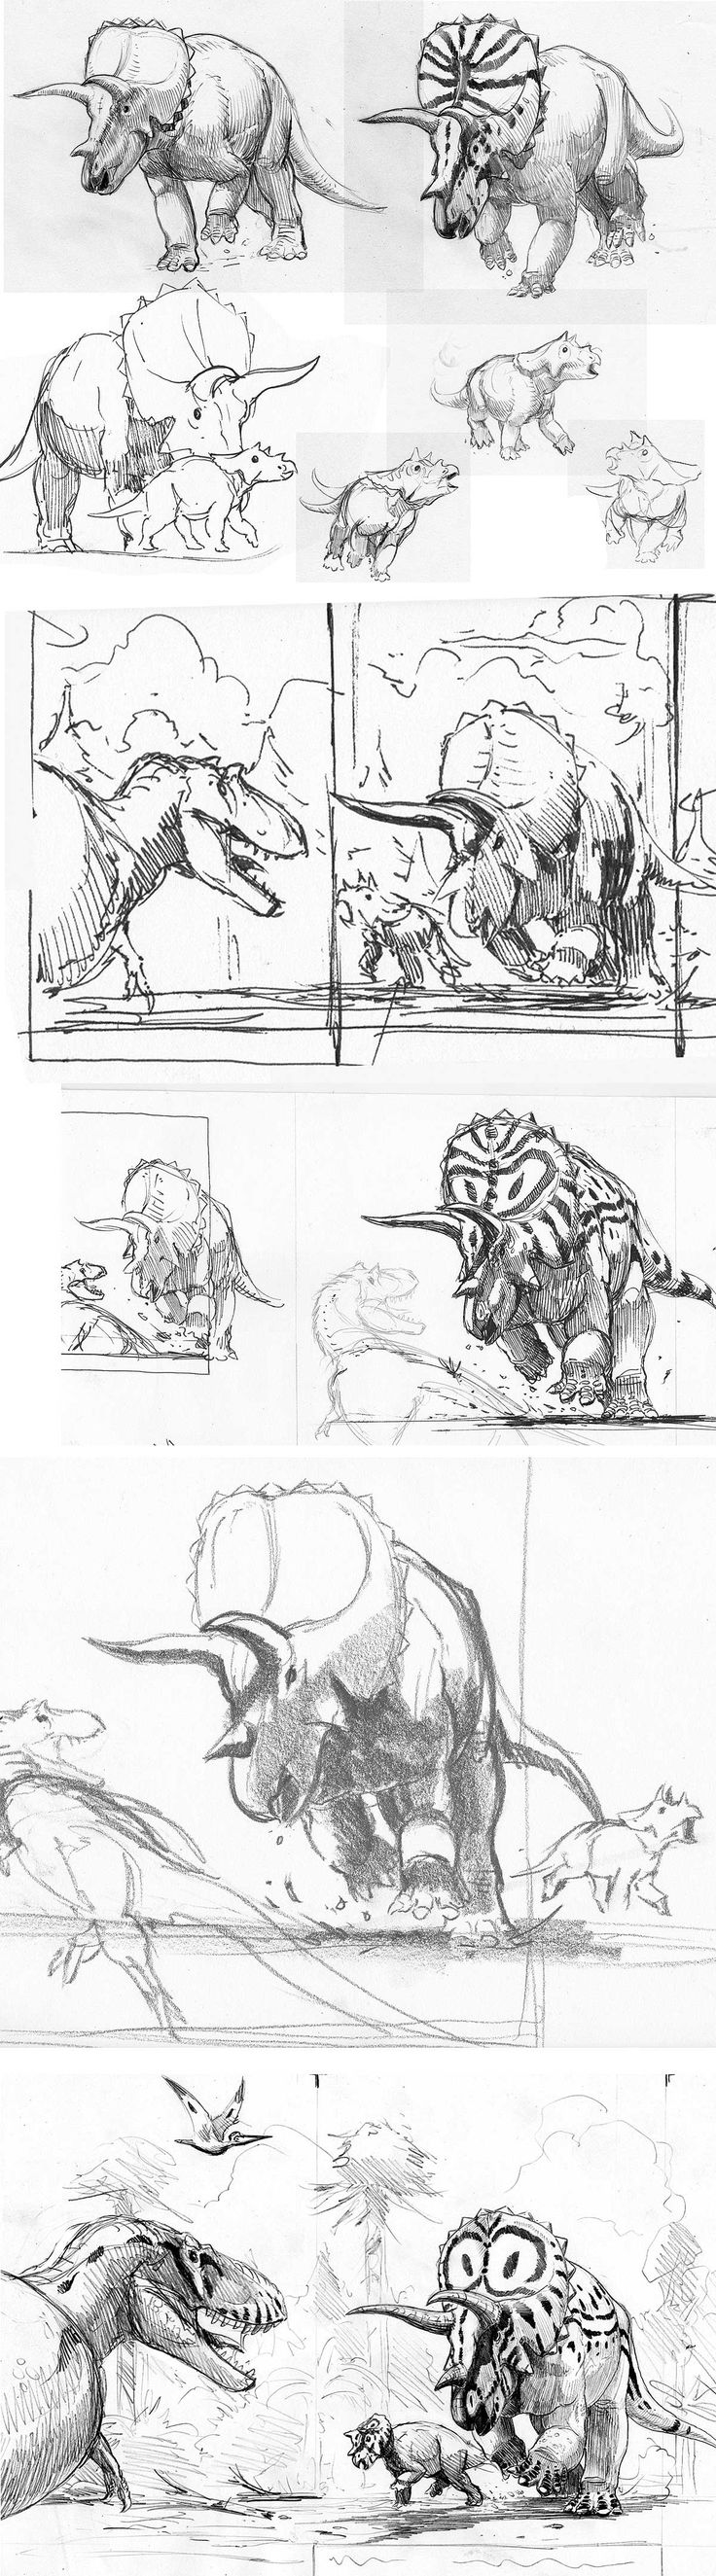 Triceratops studies and sketches - love the charging, active poses